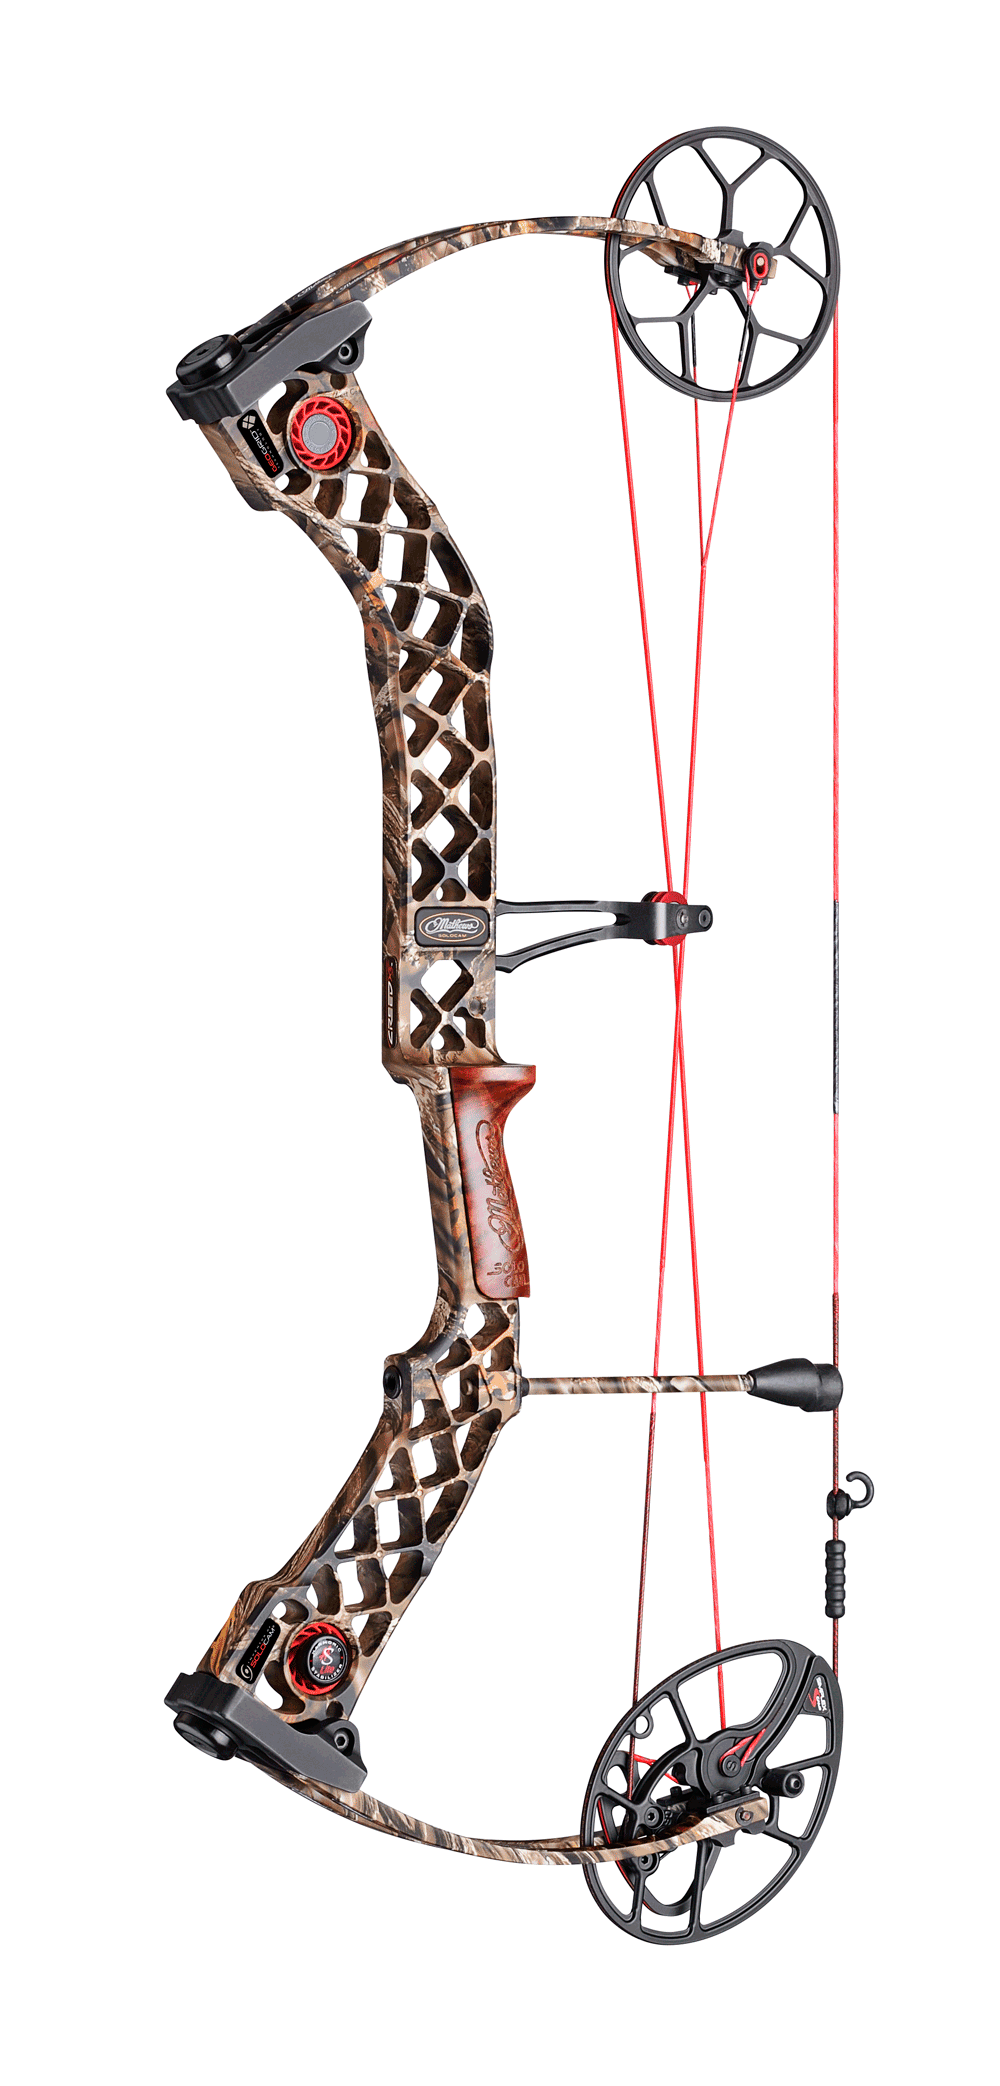 //www.bowhunter.com/files/bowhunter-2013-holiday-gift-guide/14_mathewsbow.png